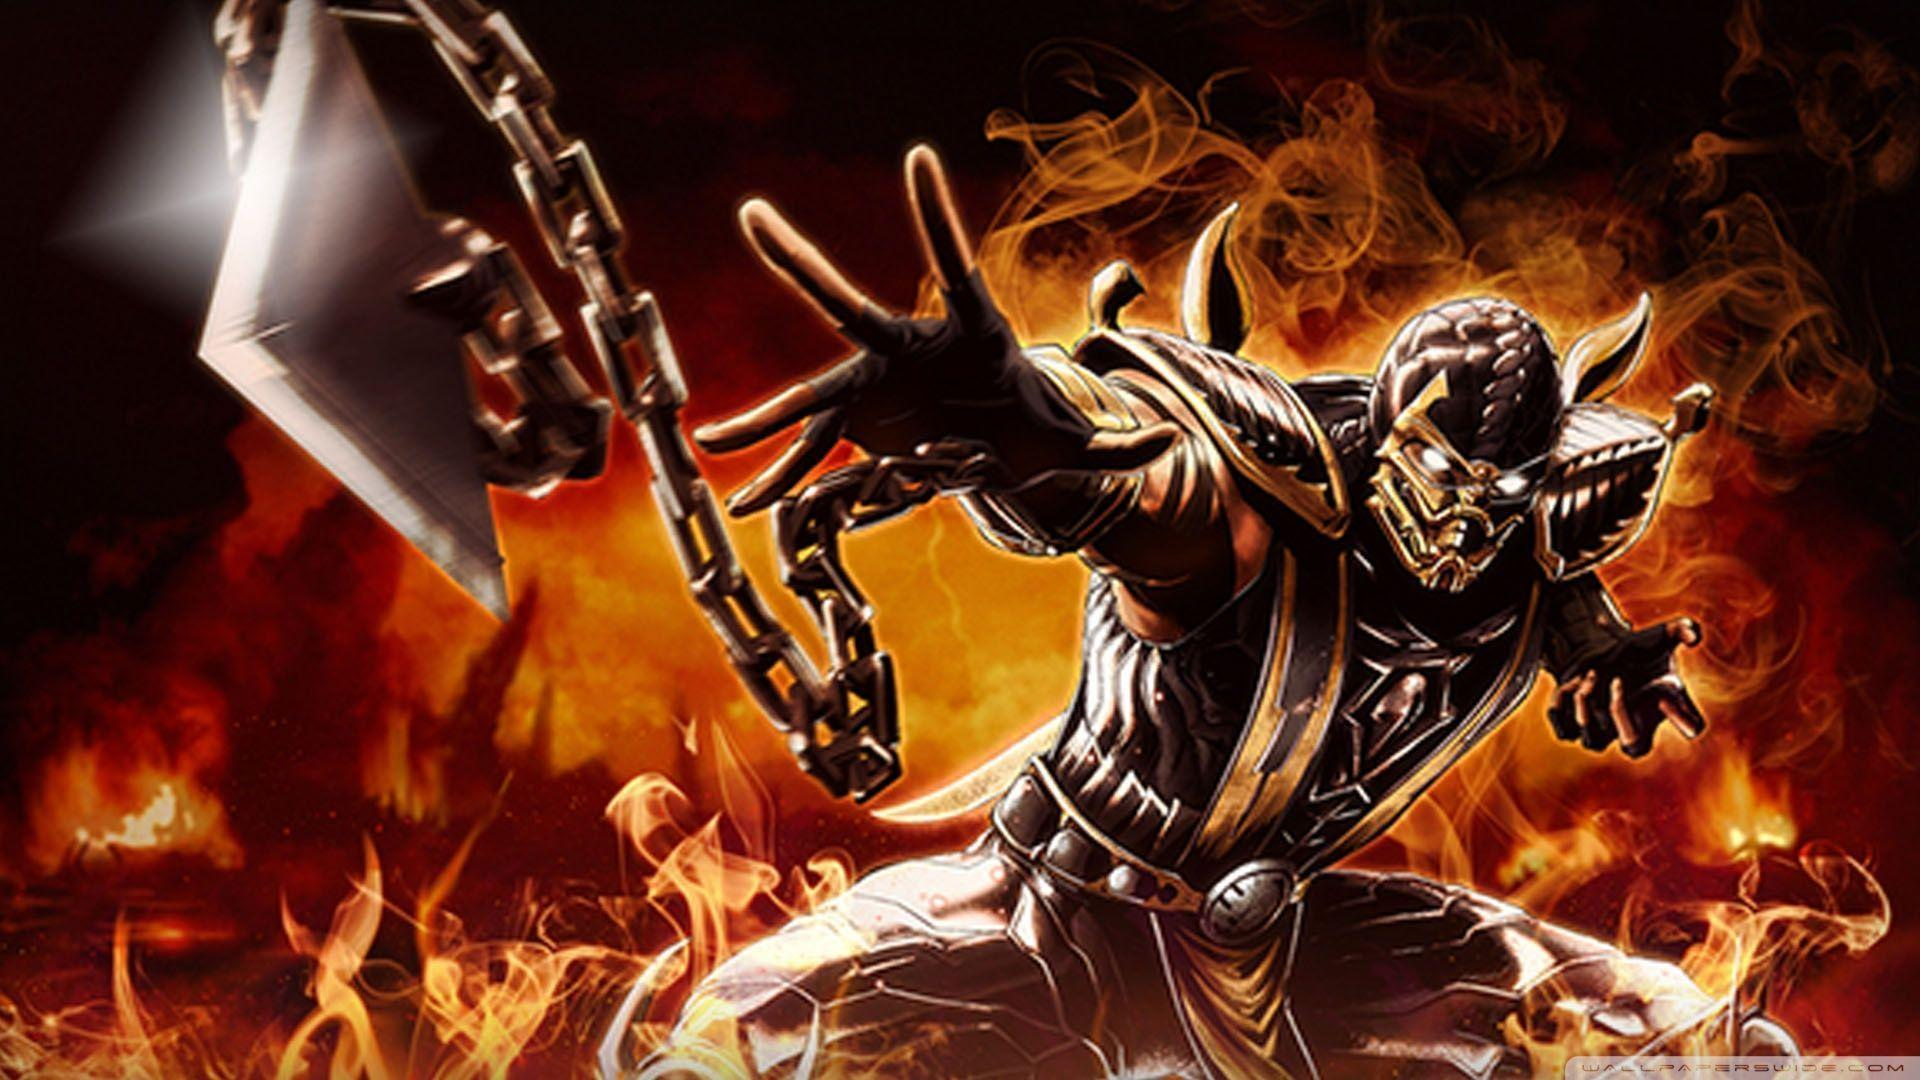 Mortal Kombat Scorpion Wallpapers Picture • dodskypict